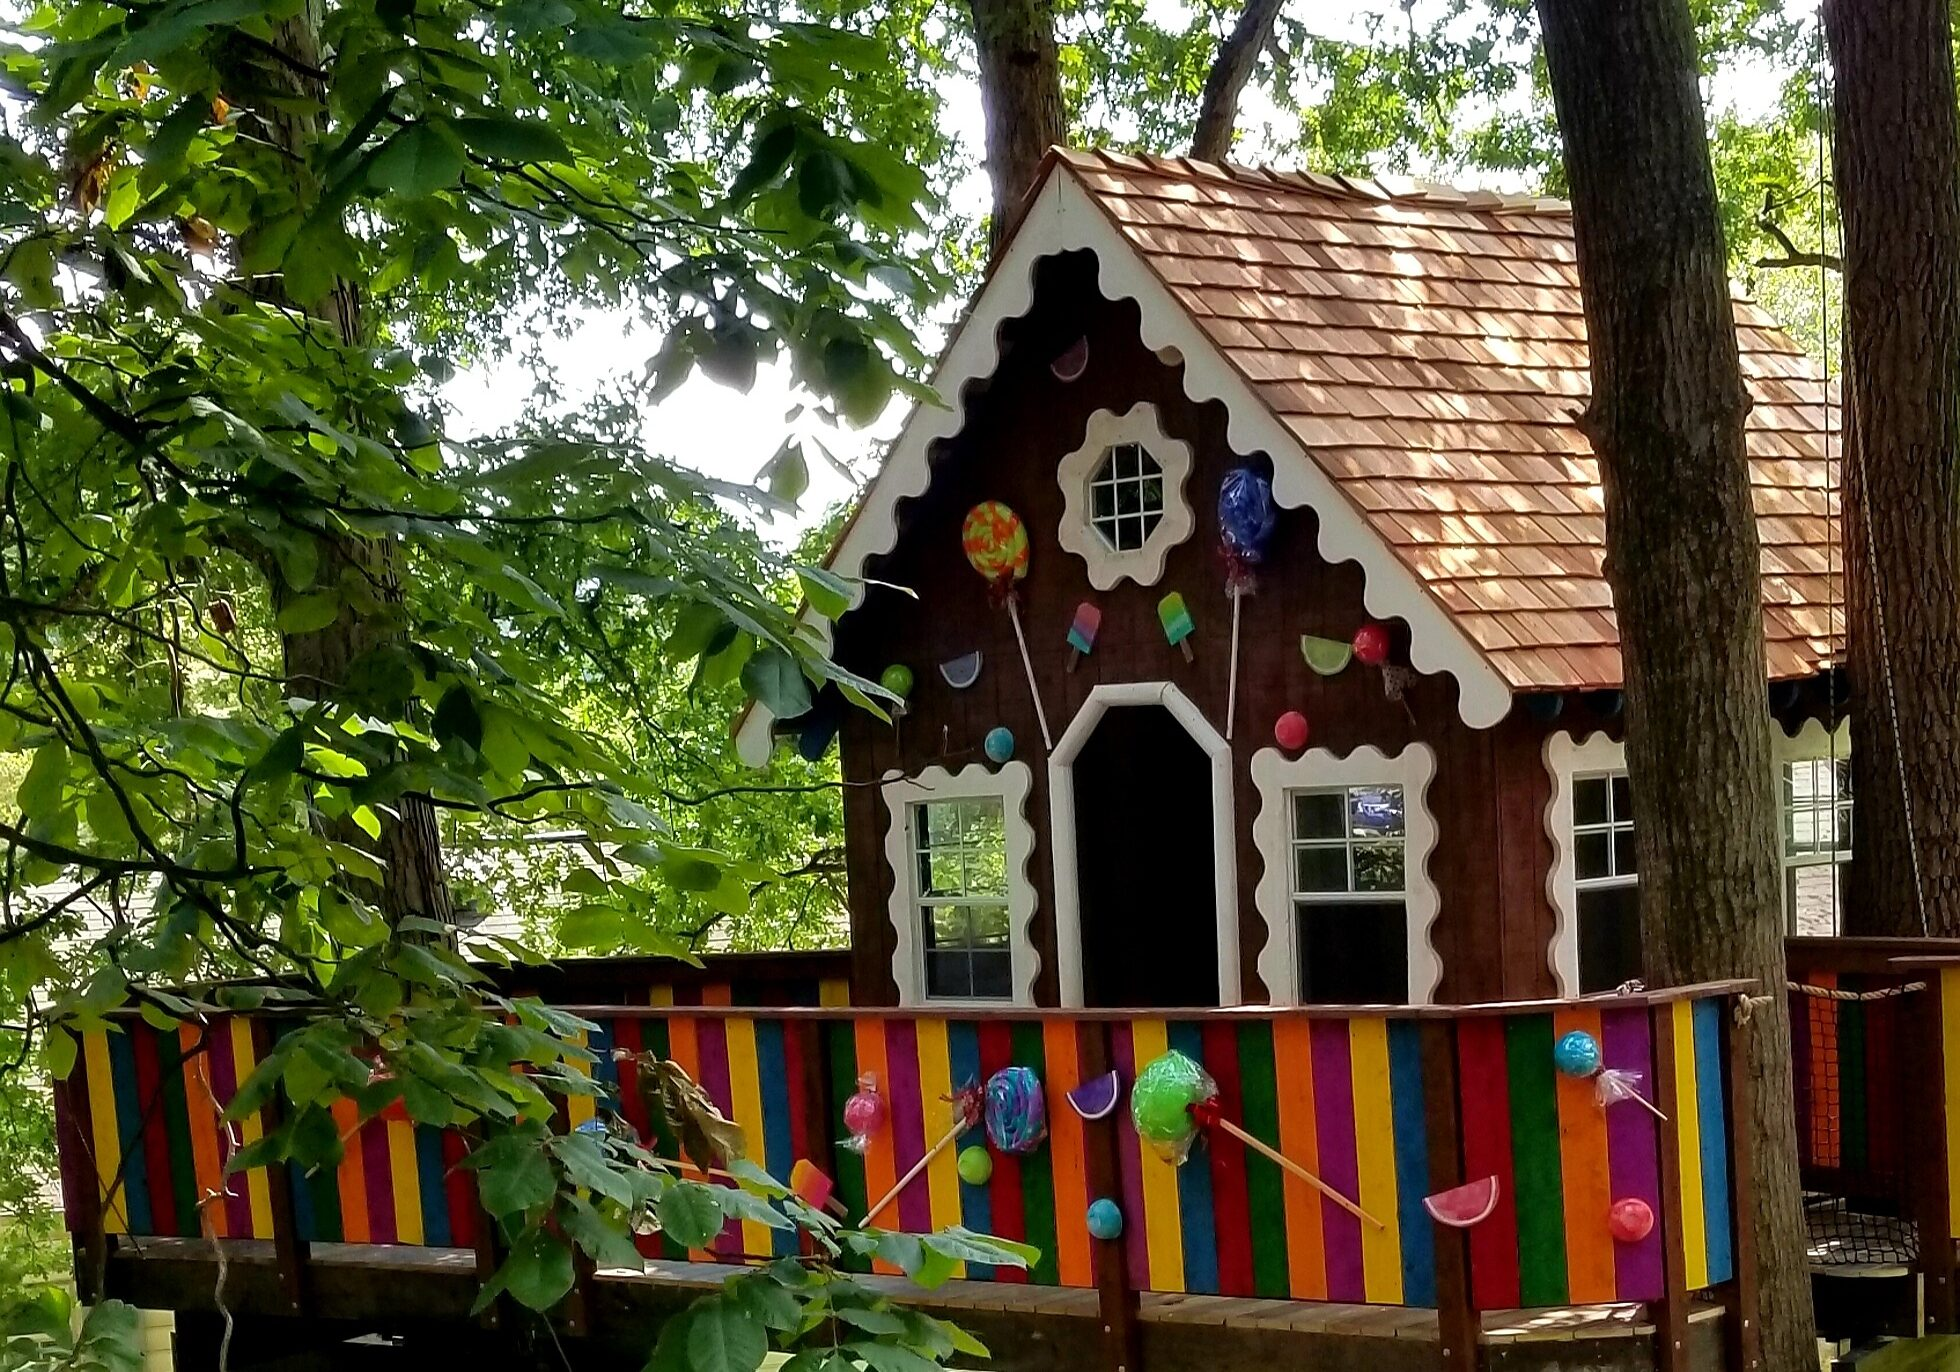 Gingerbread Treehouse